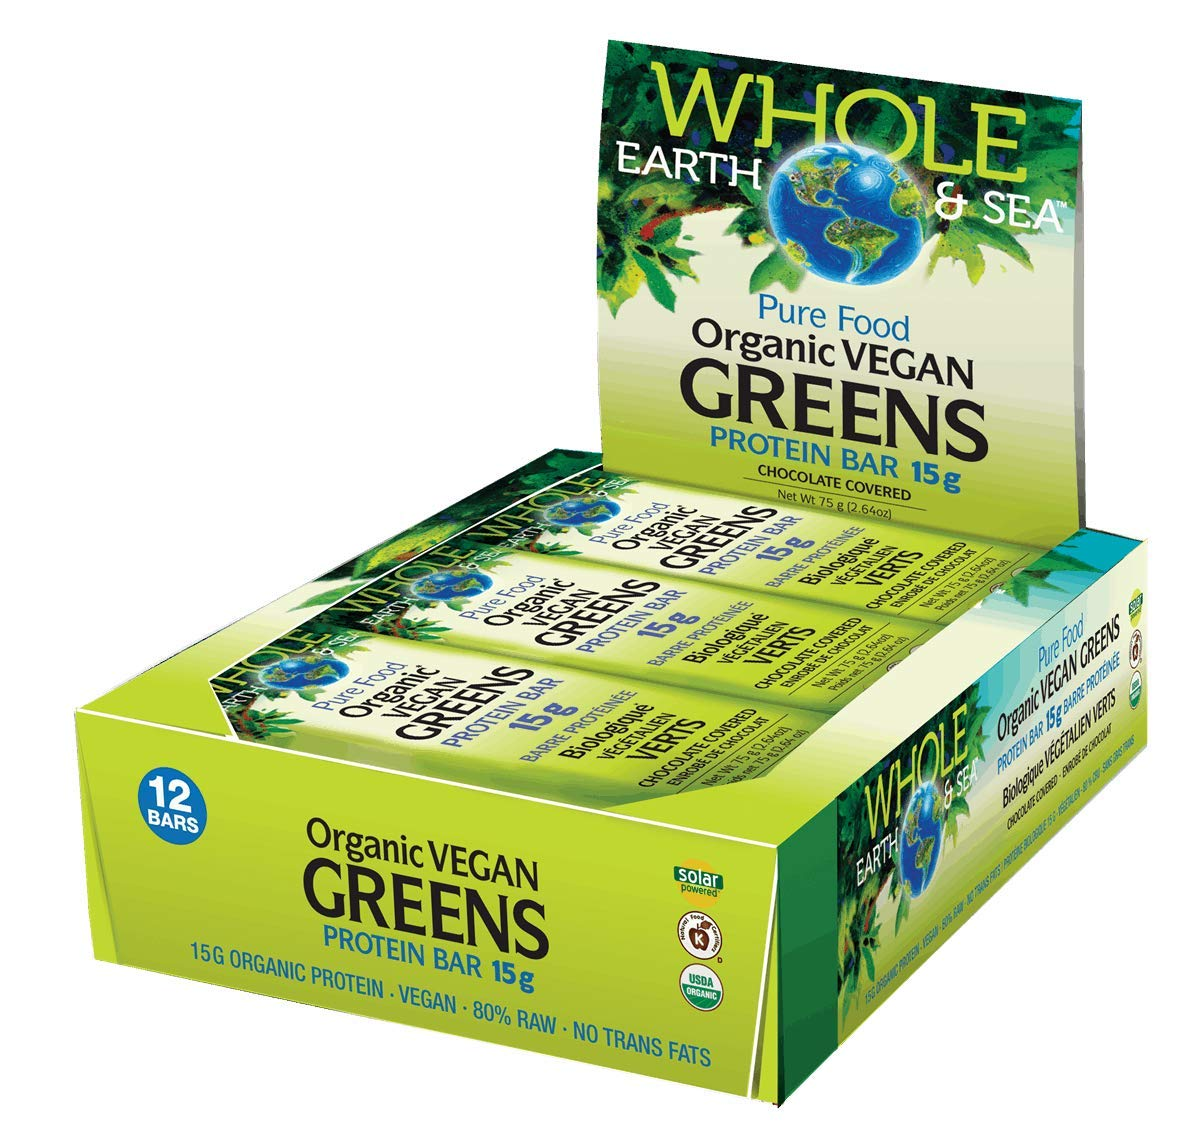 Organic Vegan Greens 2021 autumn and winter new Protein Bar Covered 12 Bars Wholesale Chocolate